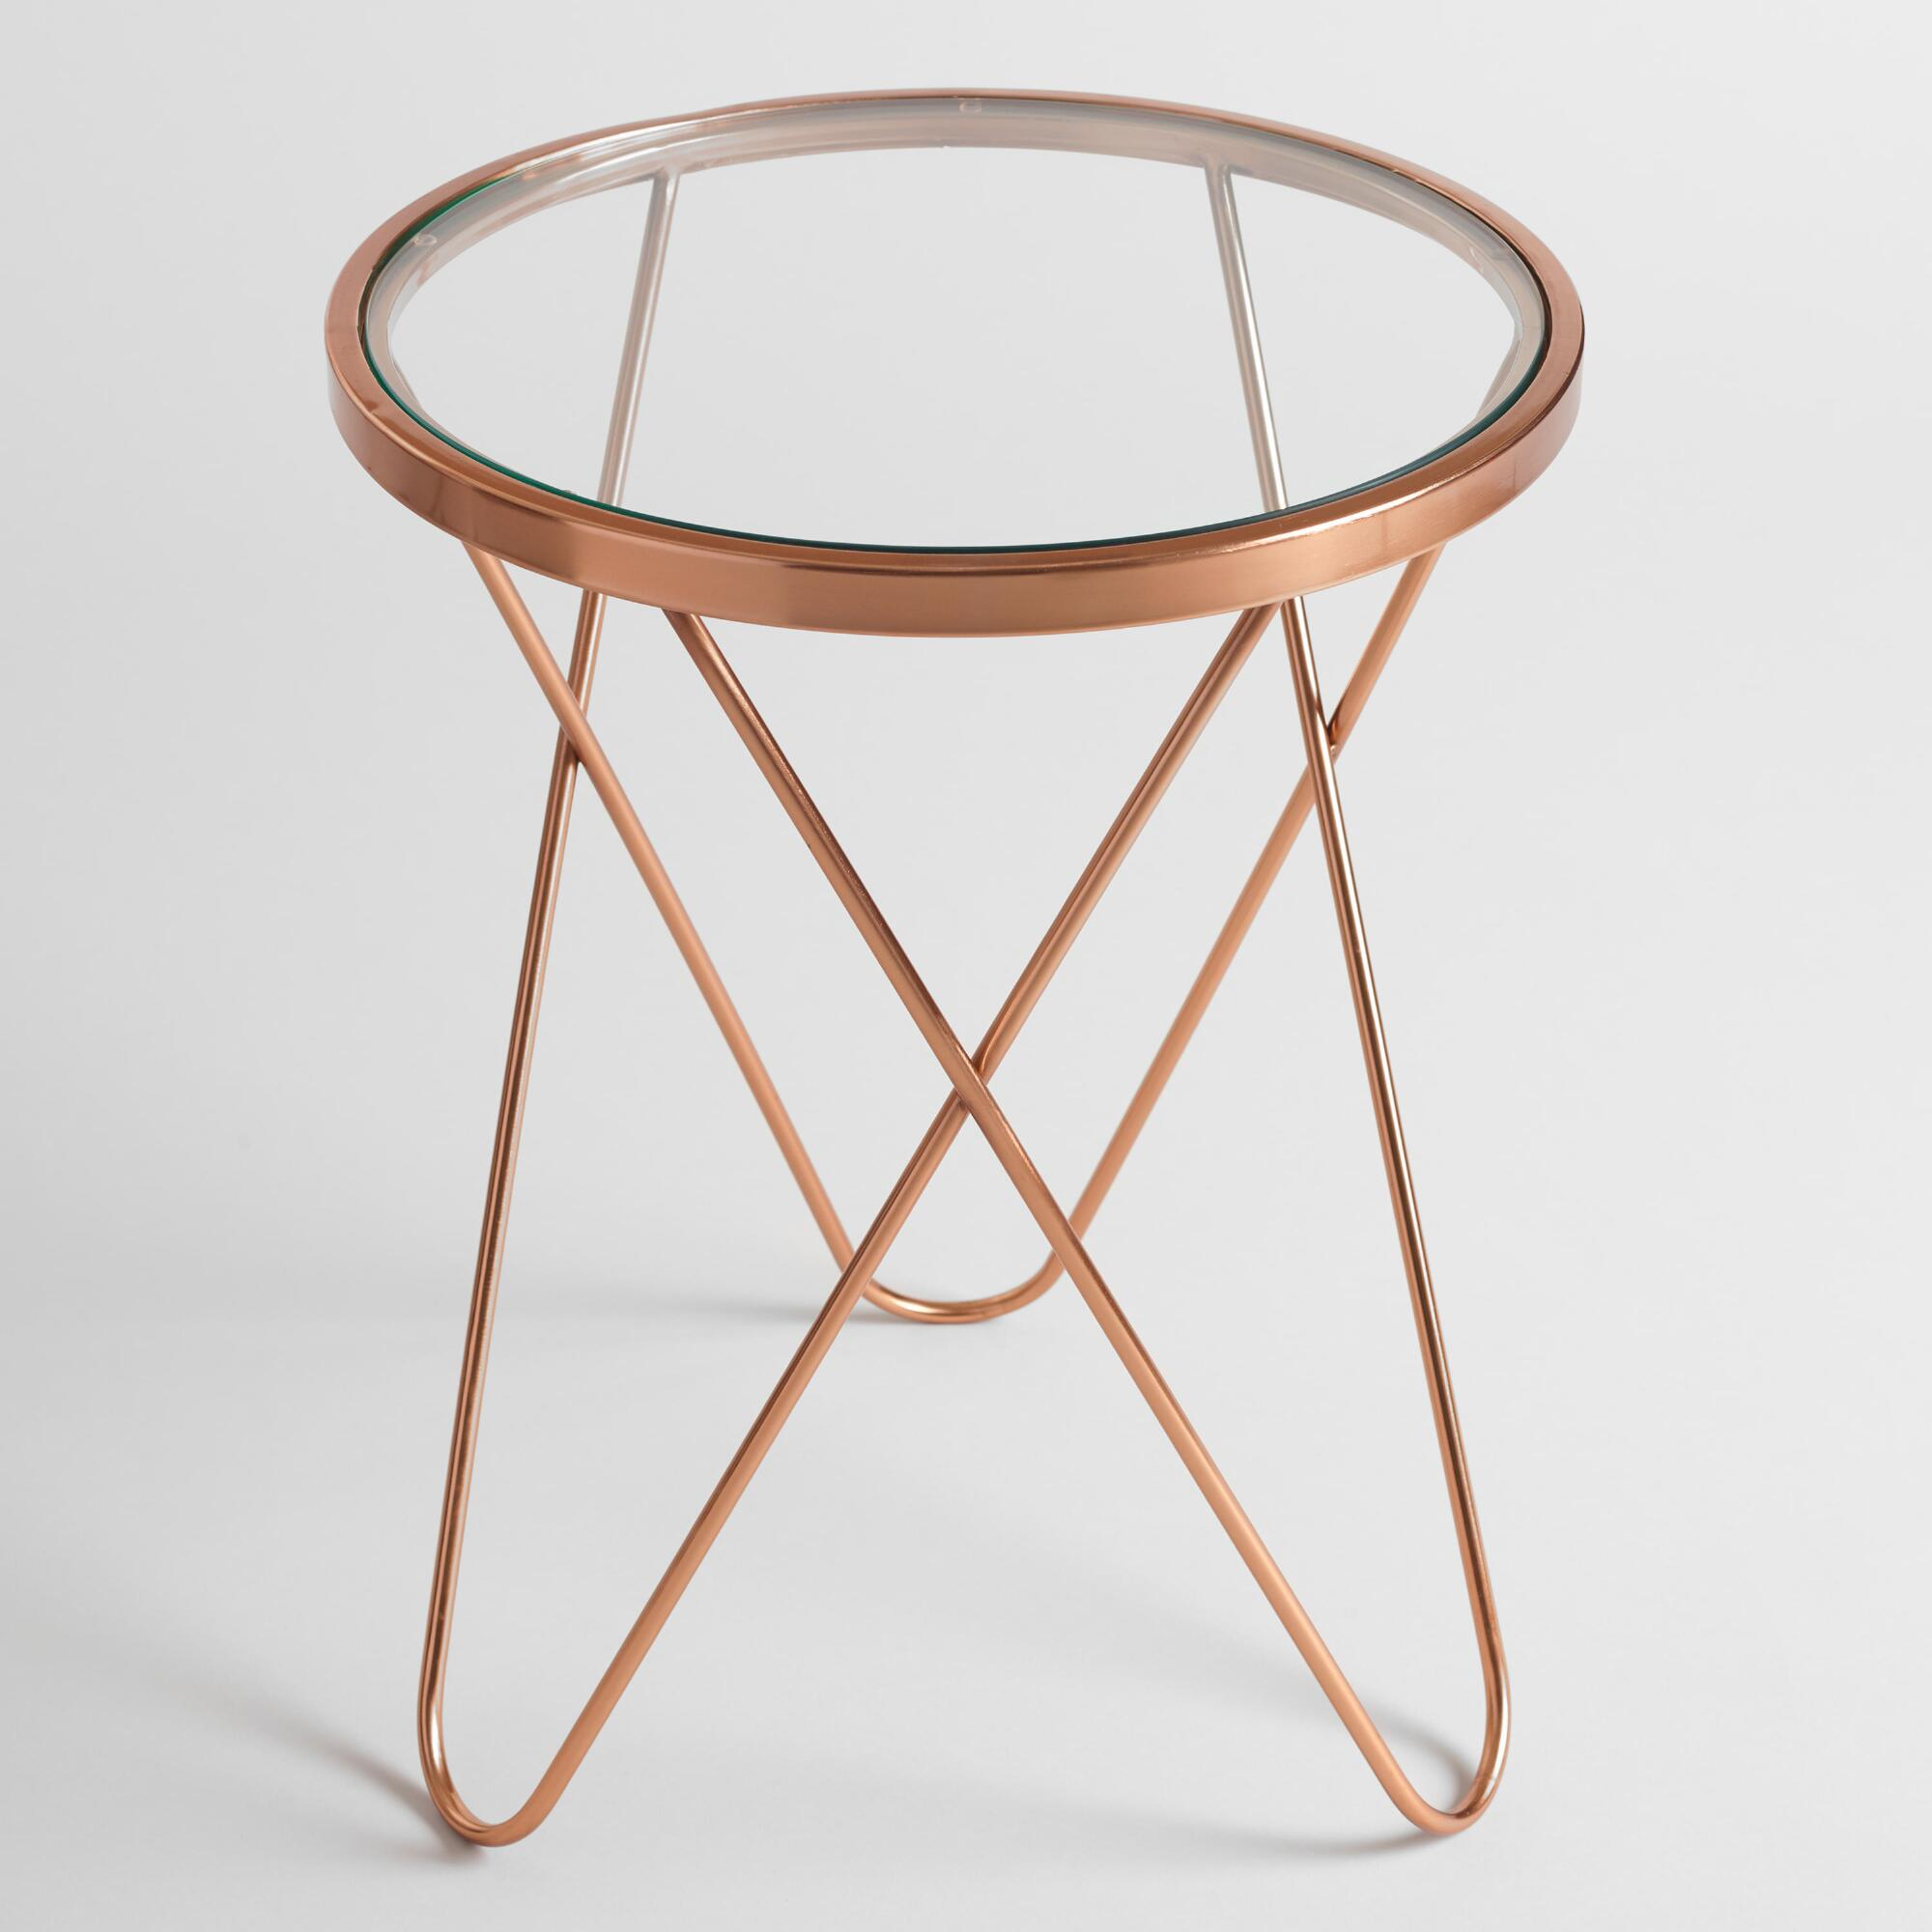 good looking target side table mid century vintage bedside davis tables low outdoor storage wood modern gumtree white lamps diy tripod gold accent full size wicker furniture floor